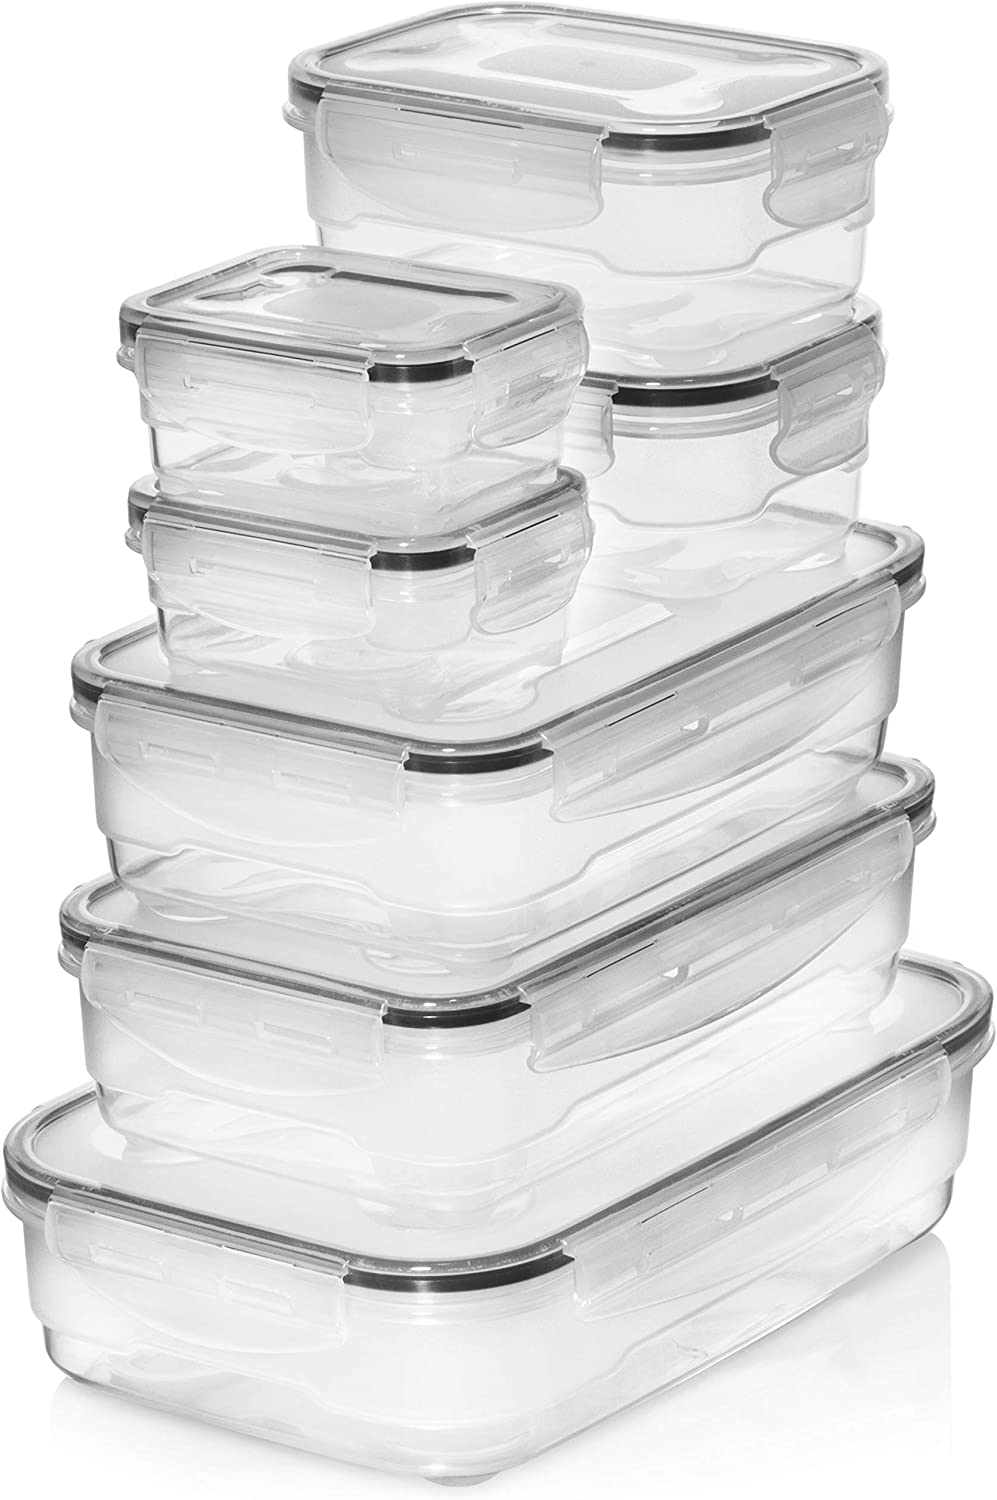 Homemaid Living Premium Airtight Plastic Storage Containers Easy Lock Lid, Microwave Freezer and Dishwasher Safe, Perfect Meal Prep or Food Storage Containers (Set of 7)